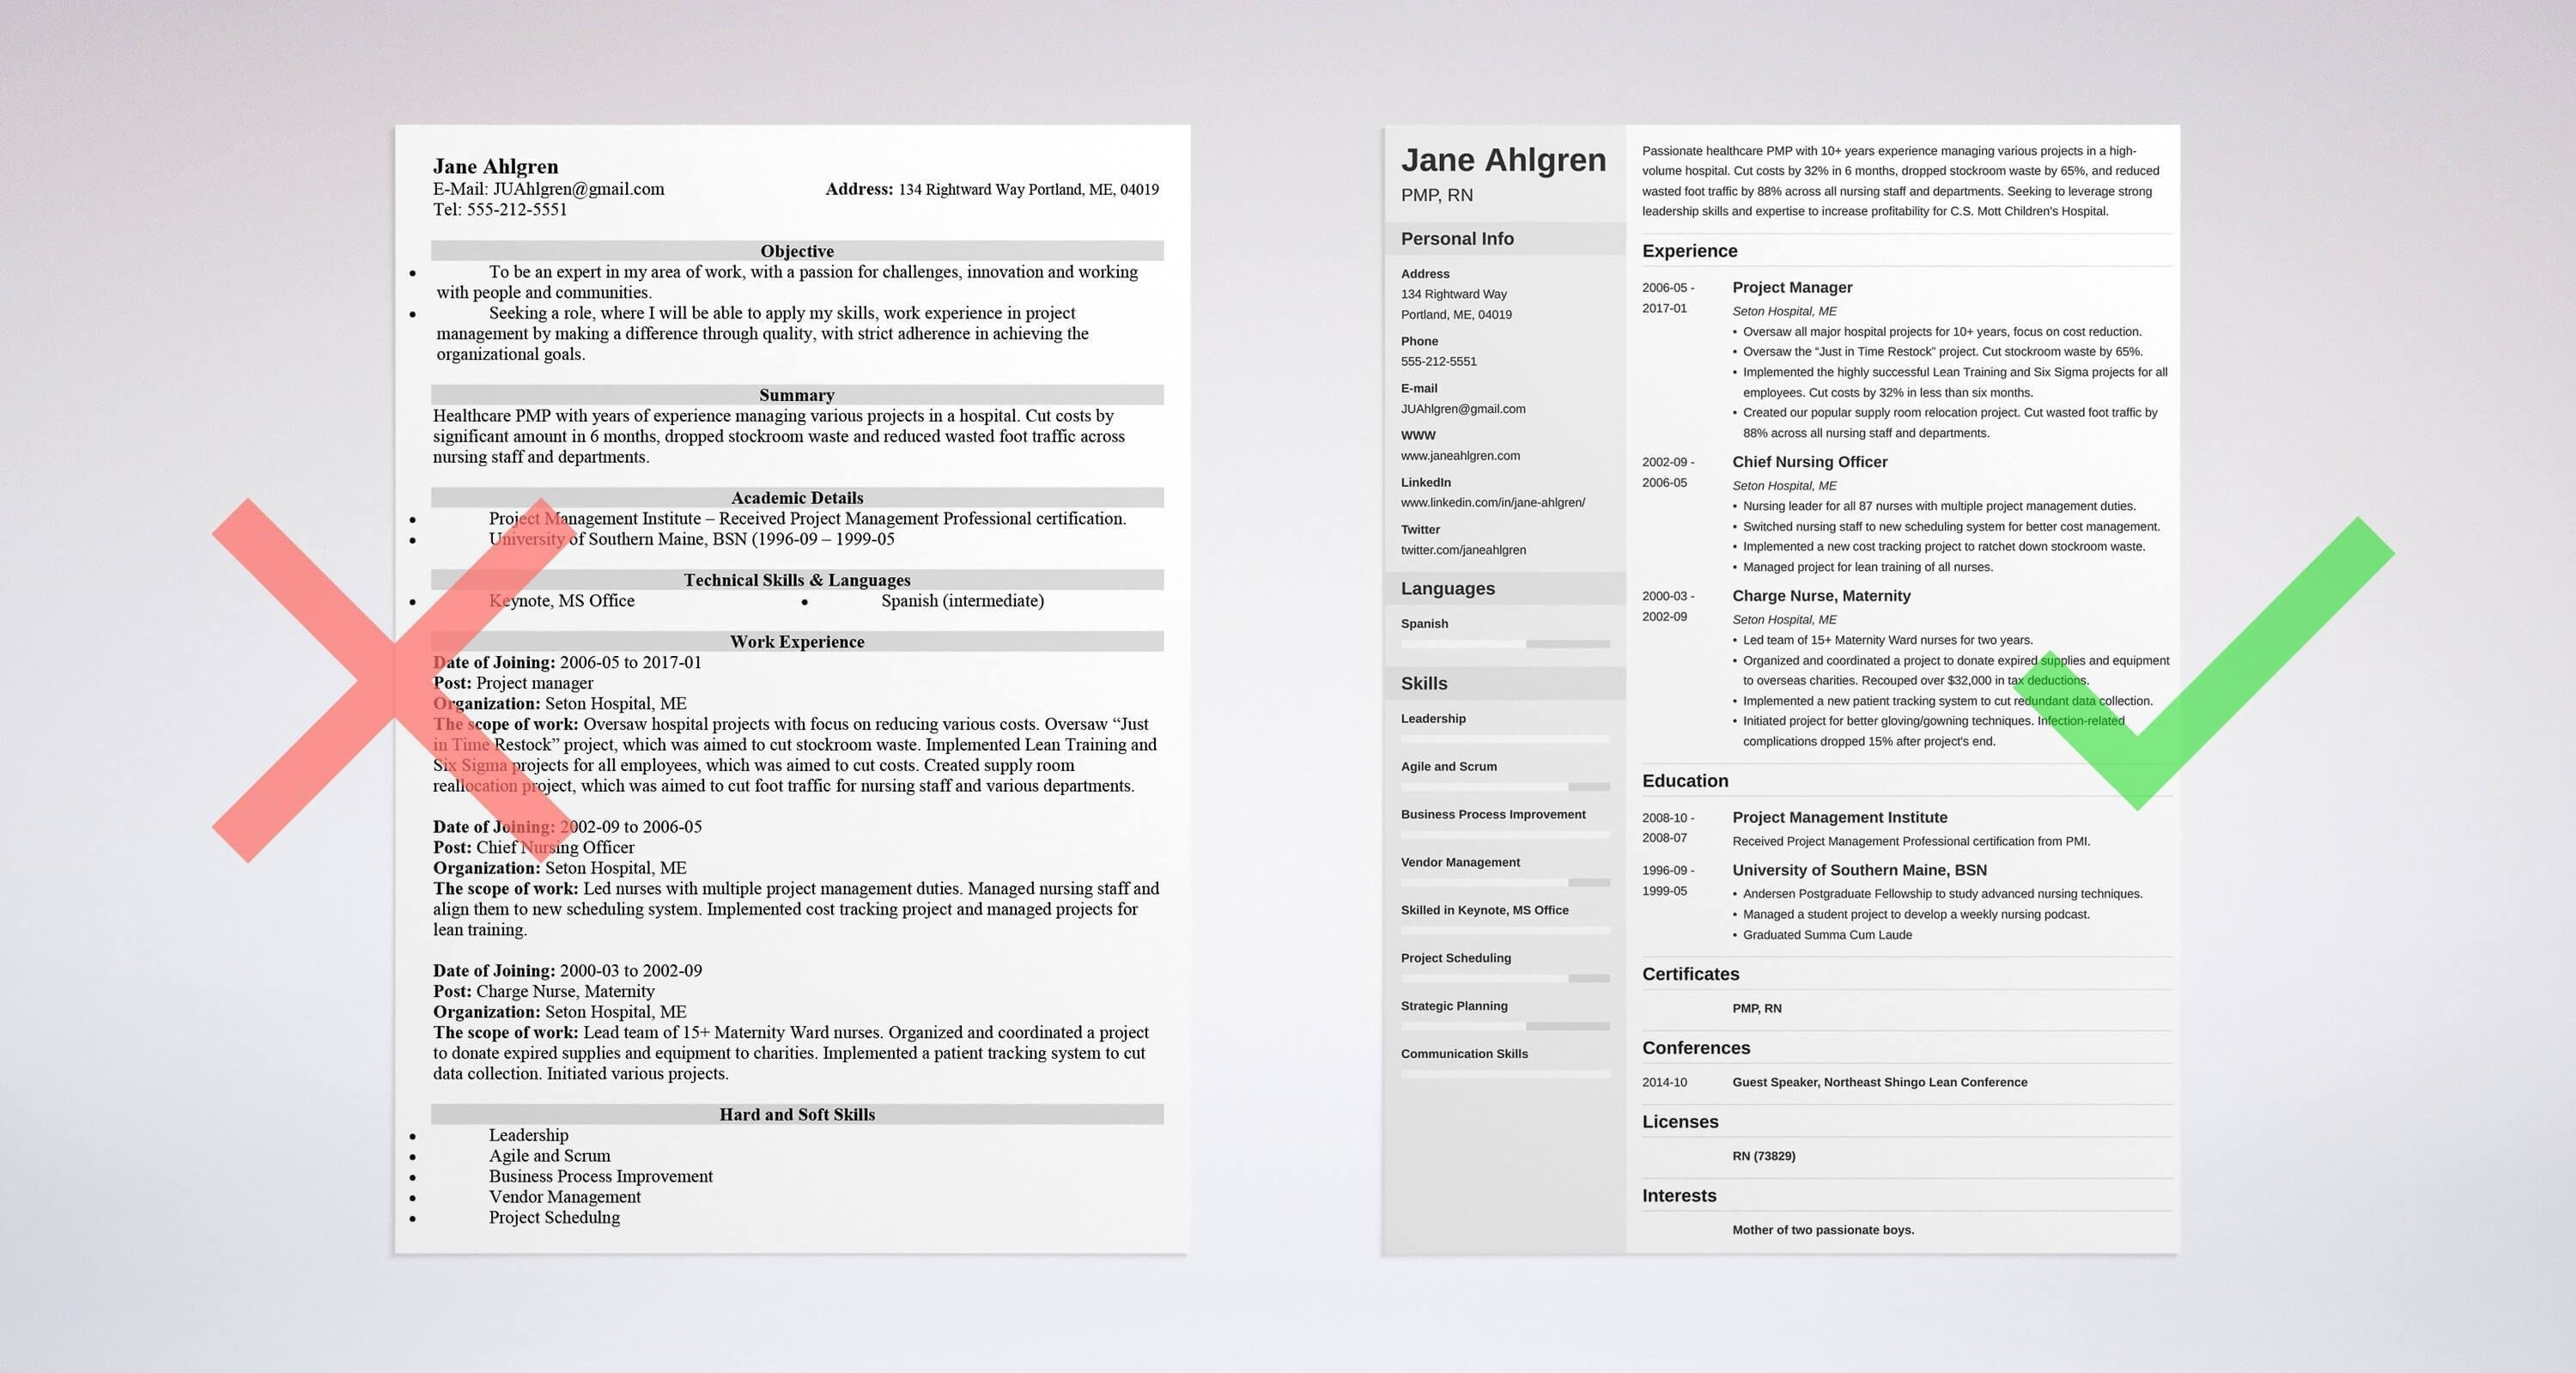 Superior Reverse_Chronological_Resume_Template For Chronological Resume